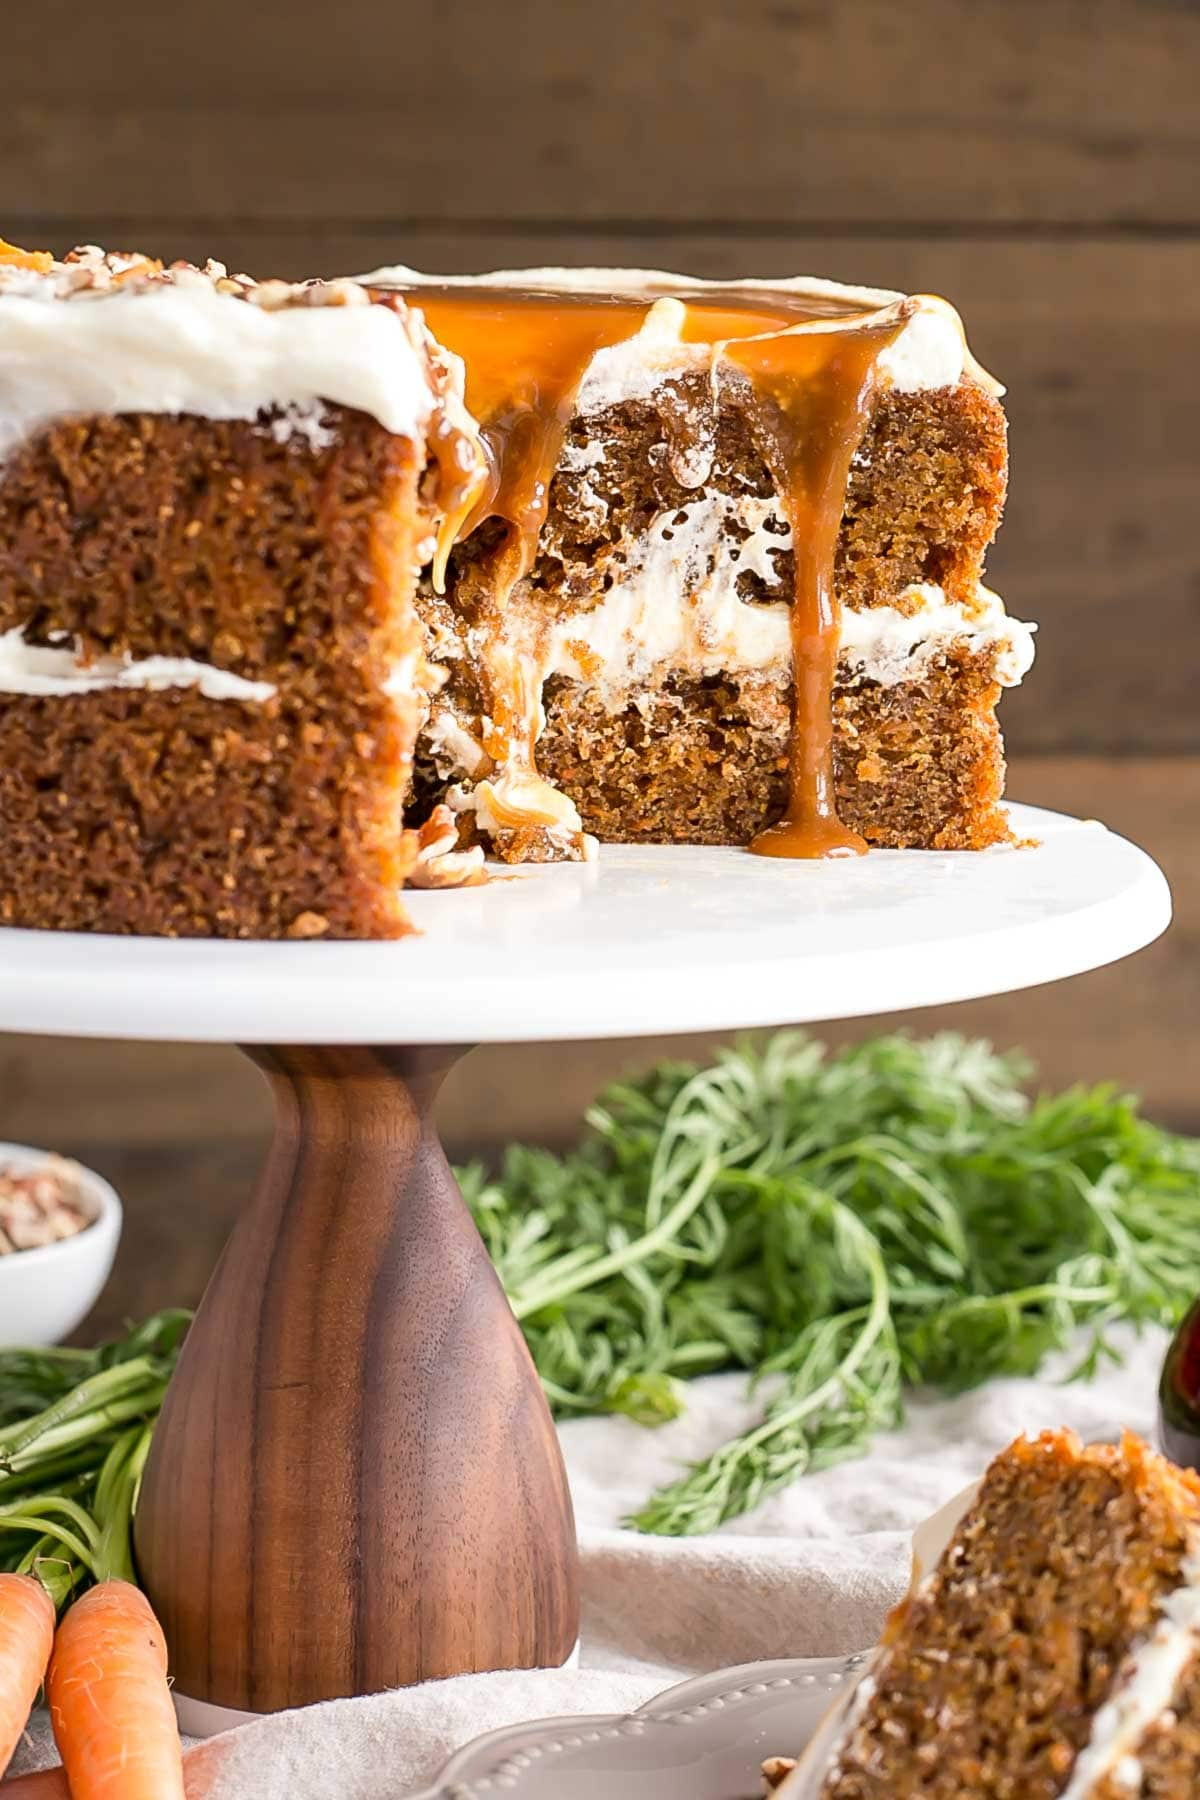 Carrot Cake on a cake stand.